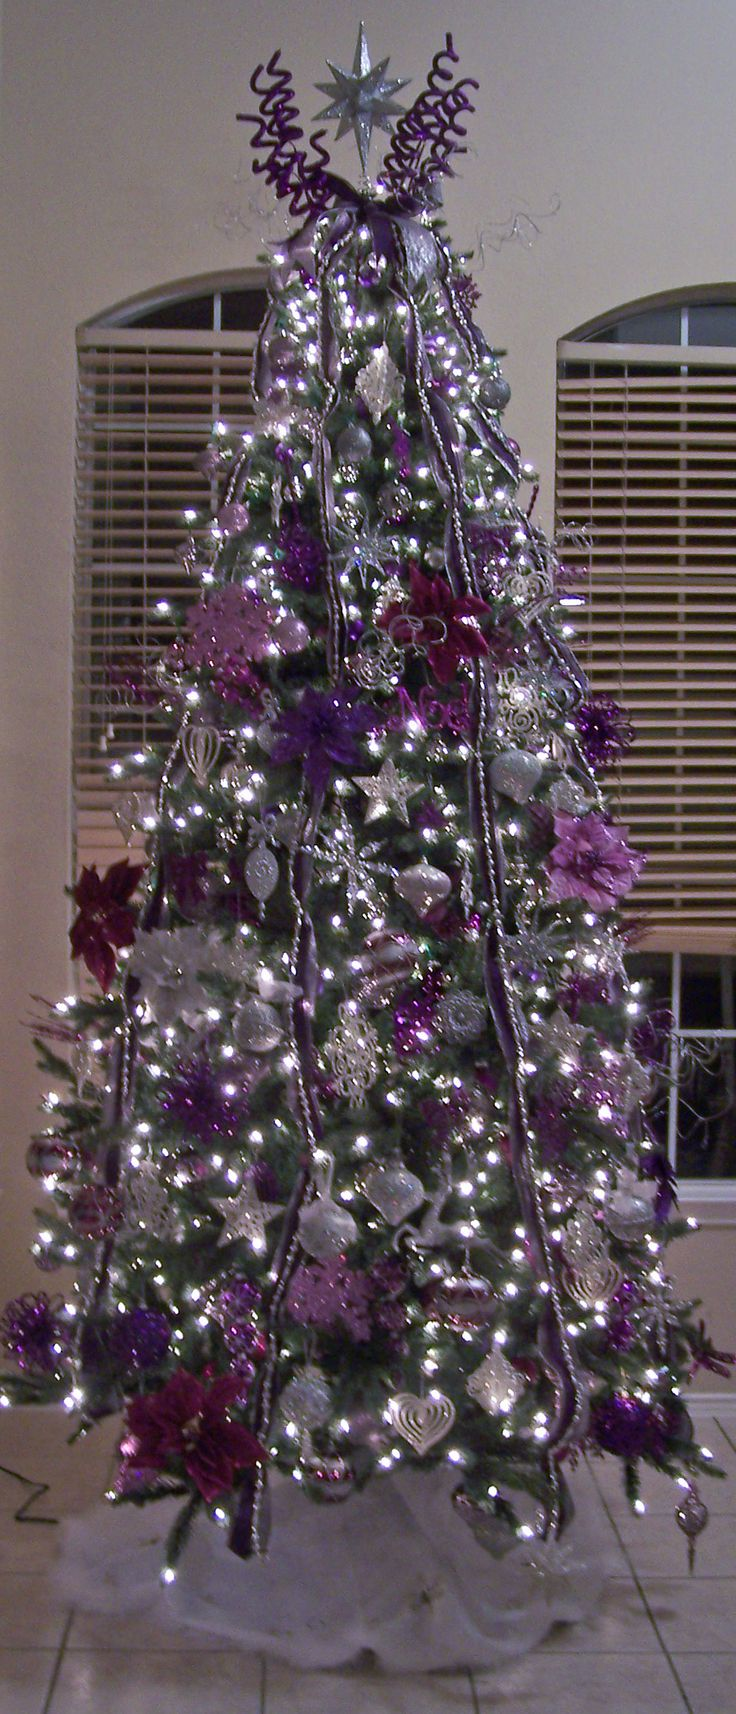 Christmas tree decorations purple and silver - Find This Pin And More On A Purple Silver Christmas